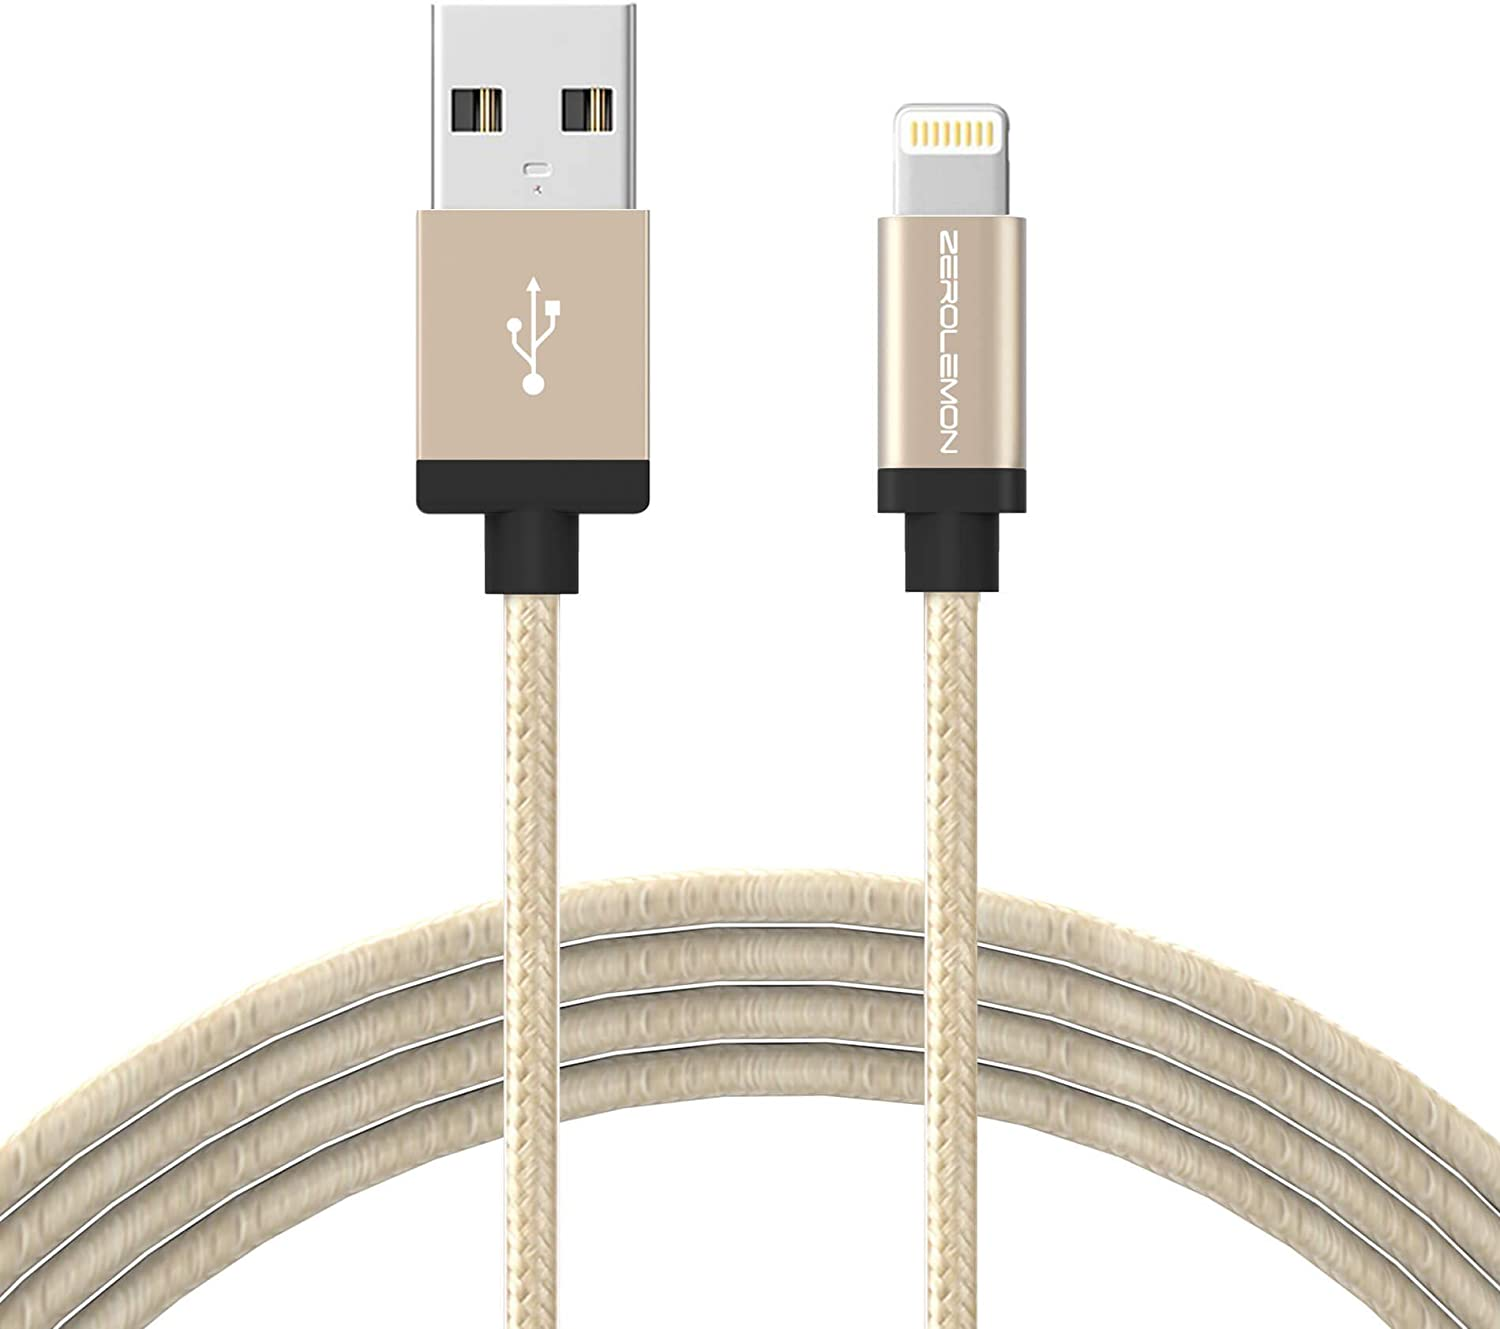 iPhone Charger [Apple MFi Certified], ZeroLemon Lightning to USB Rugged Nylon Cable 6.4 Feet/2 Meter + Aluminum Cap for iPhone 11/Pro/Max/XS Max/XR, 10.2'' Ipad 2019 and More - Rugged Gold